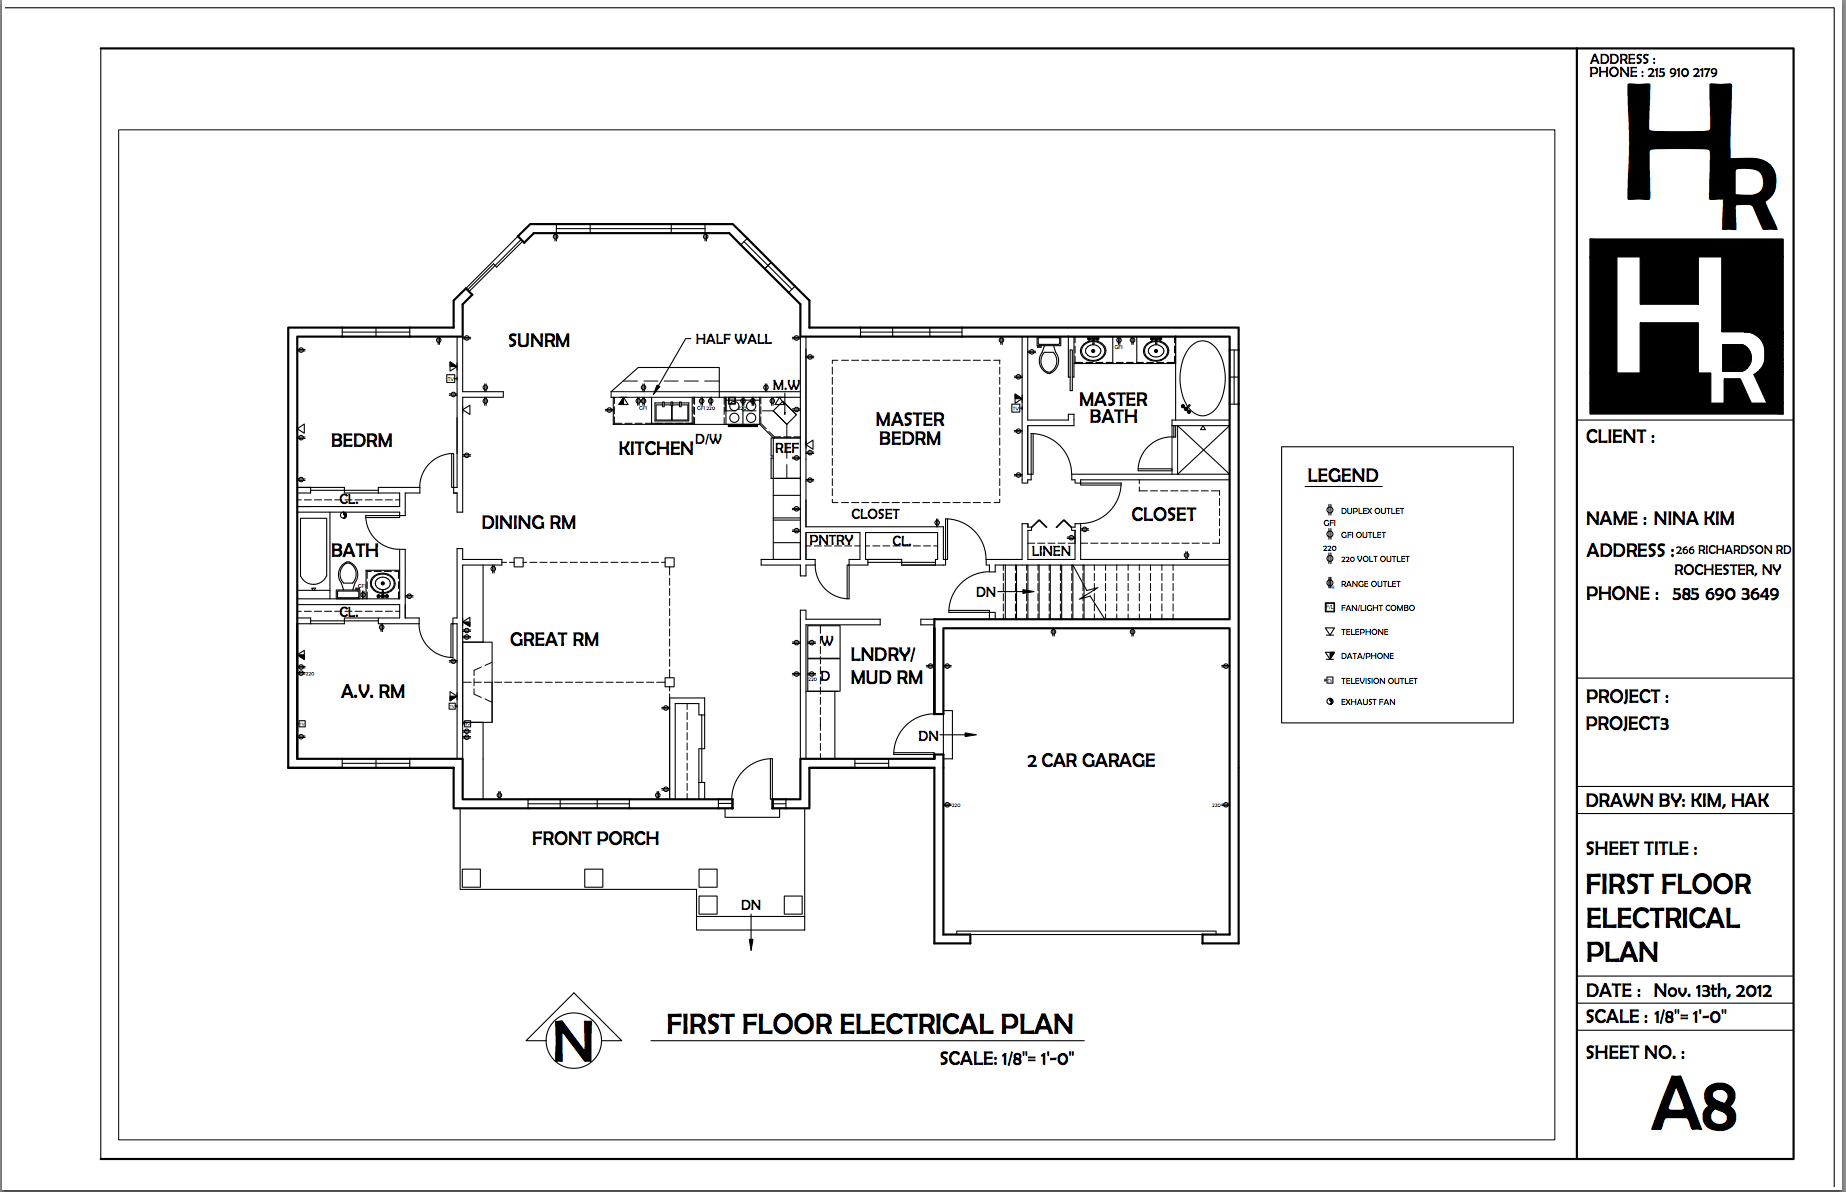 medium resolution of first floor electrical plan